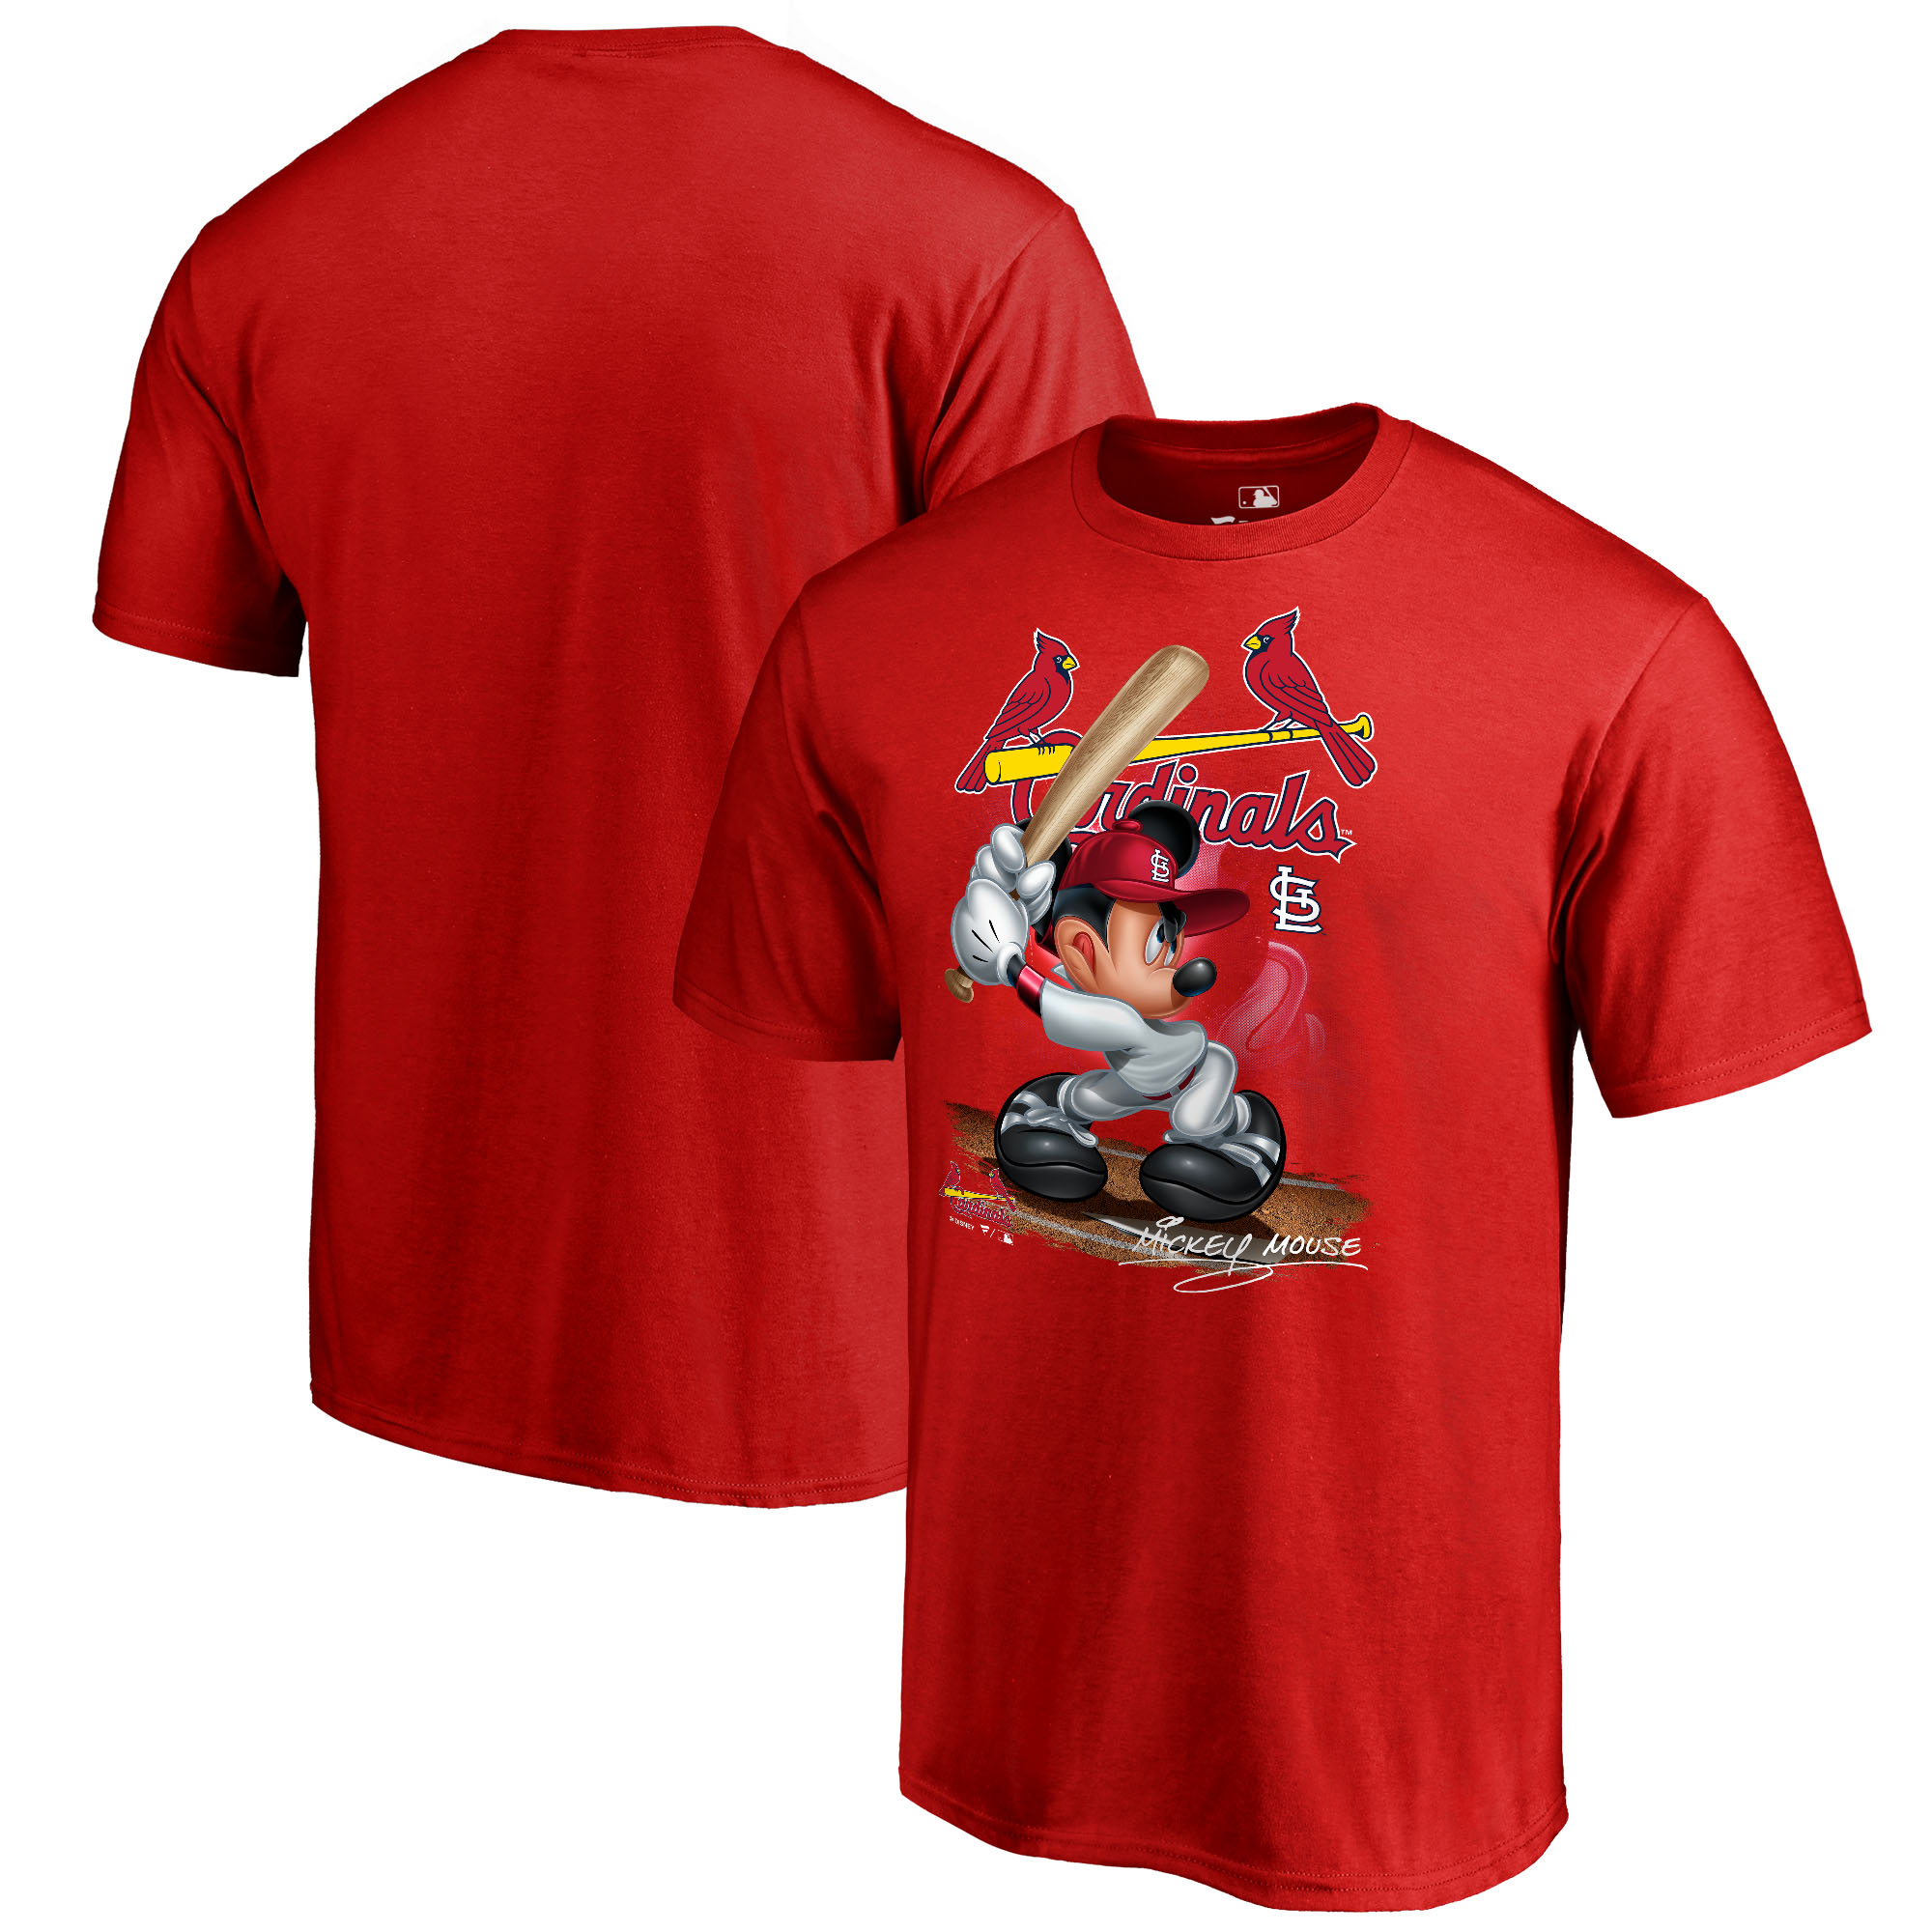 St. Louis Cardinals Fanatics Branded Disney All Star T-Shirt - Red